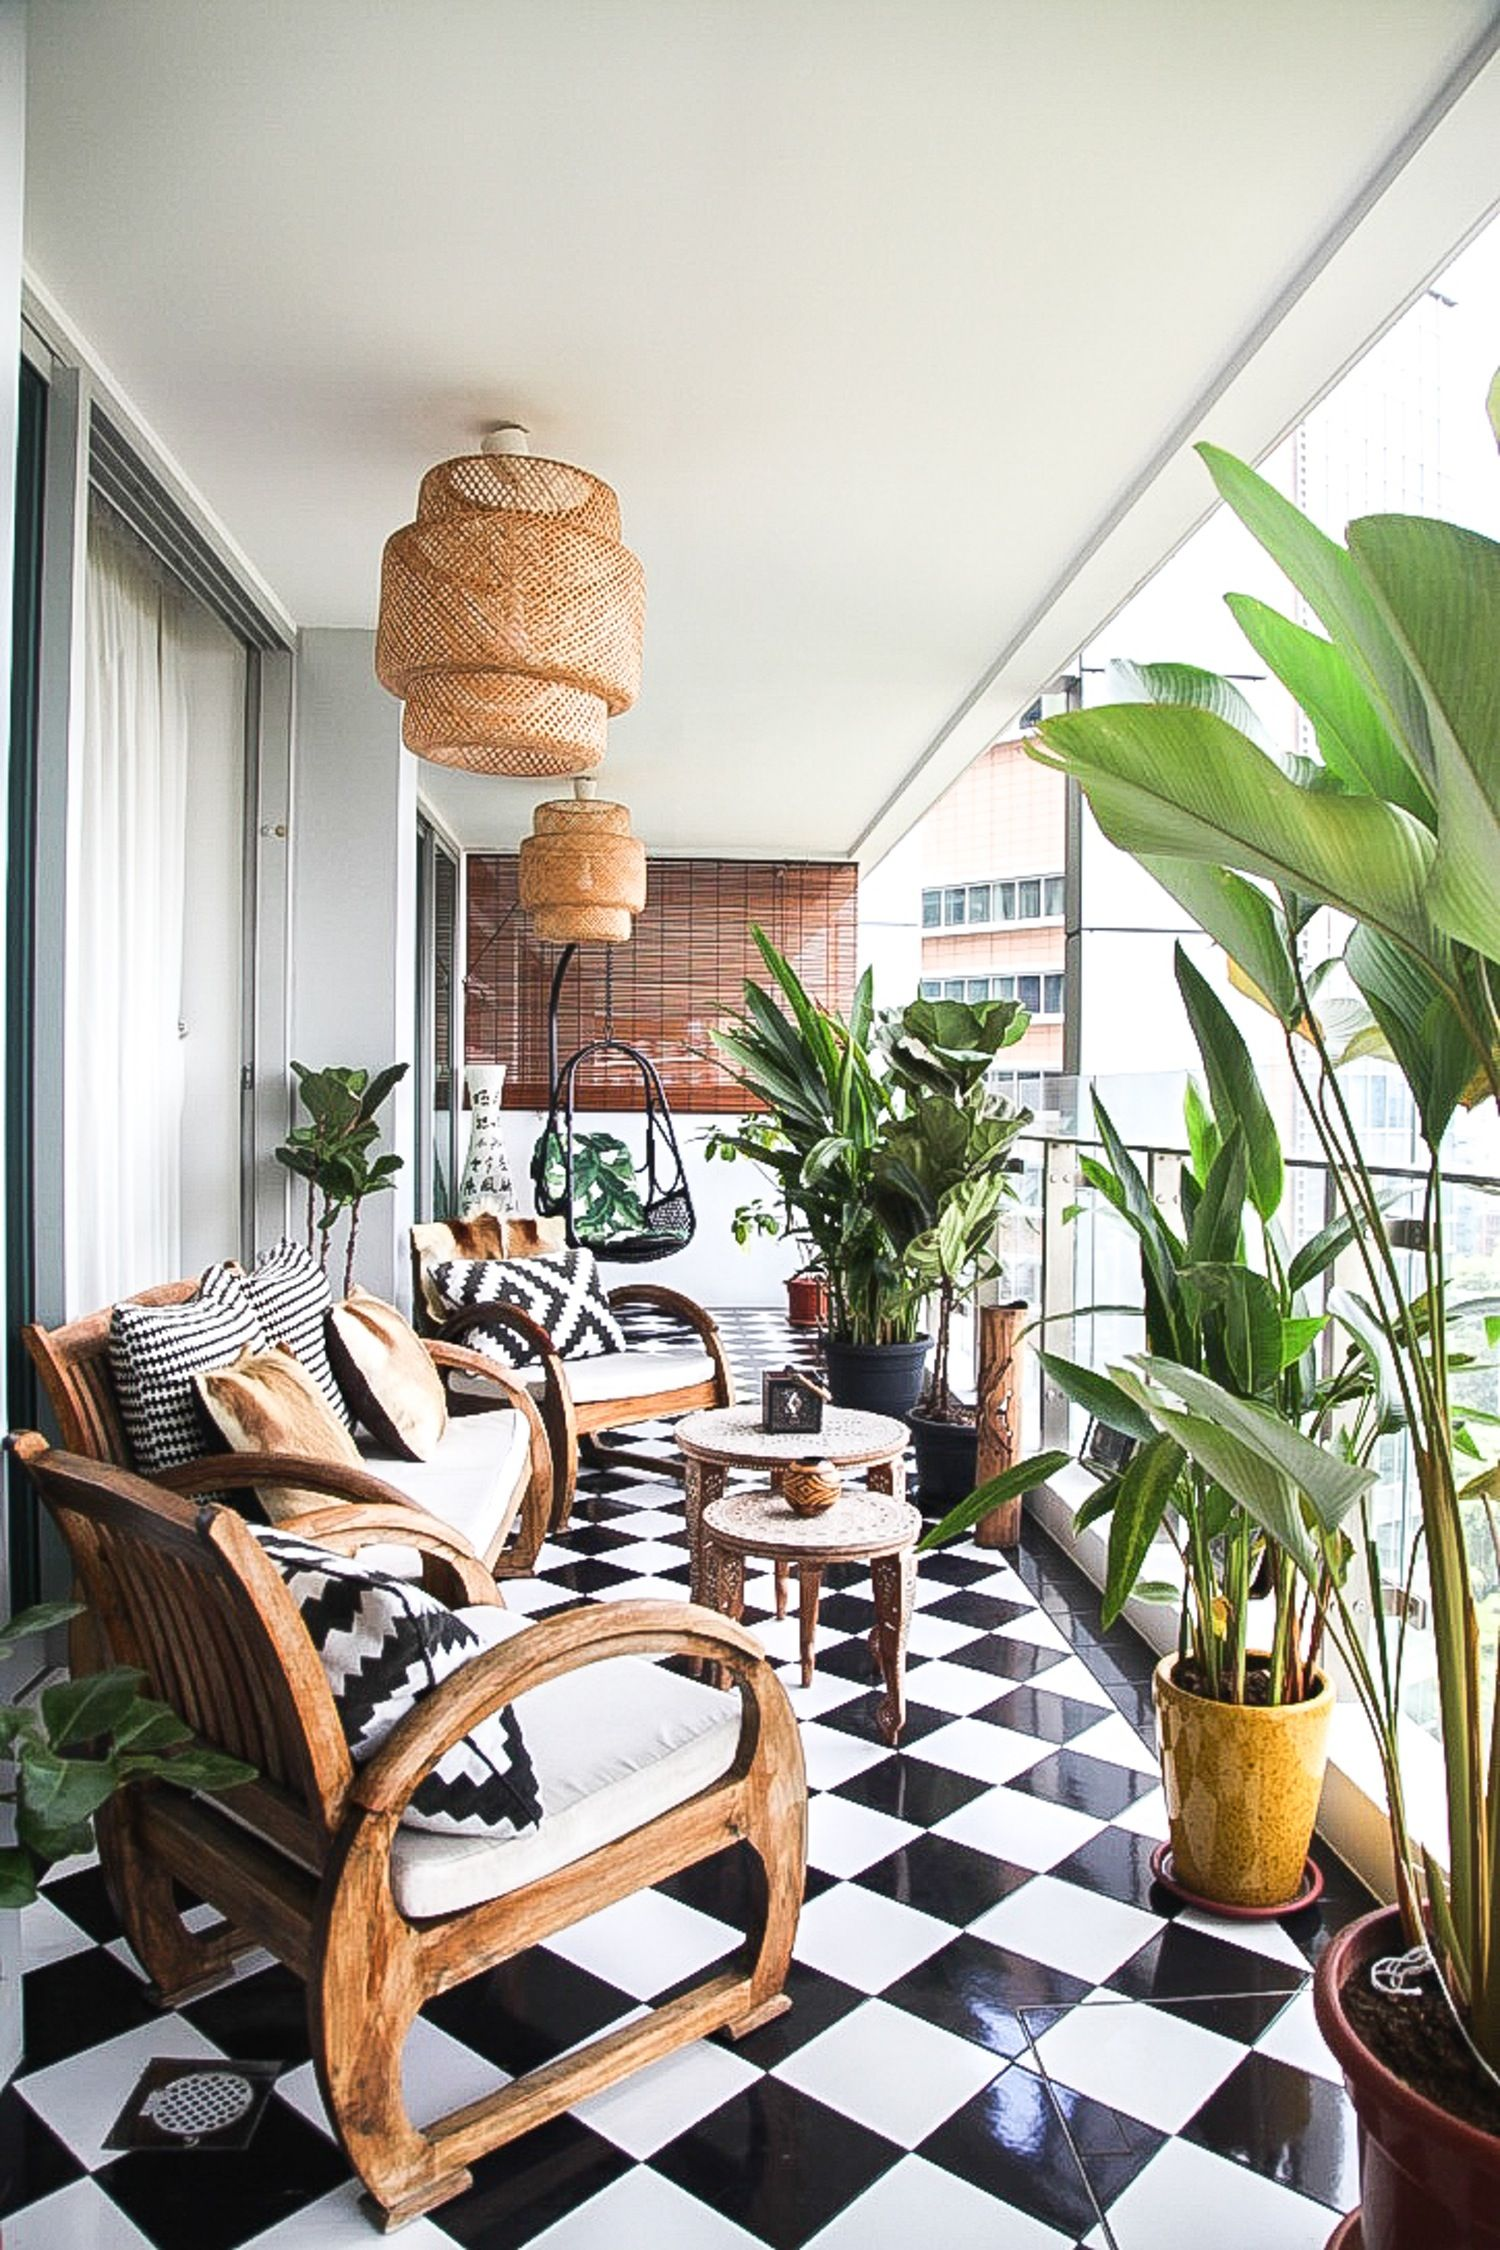 Home Design Ideas Malaysia: A Stylish & Personal Apartment In Singapore